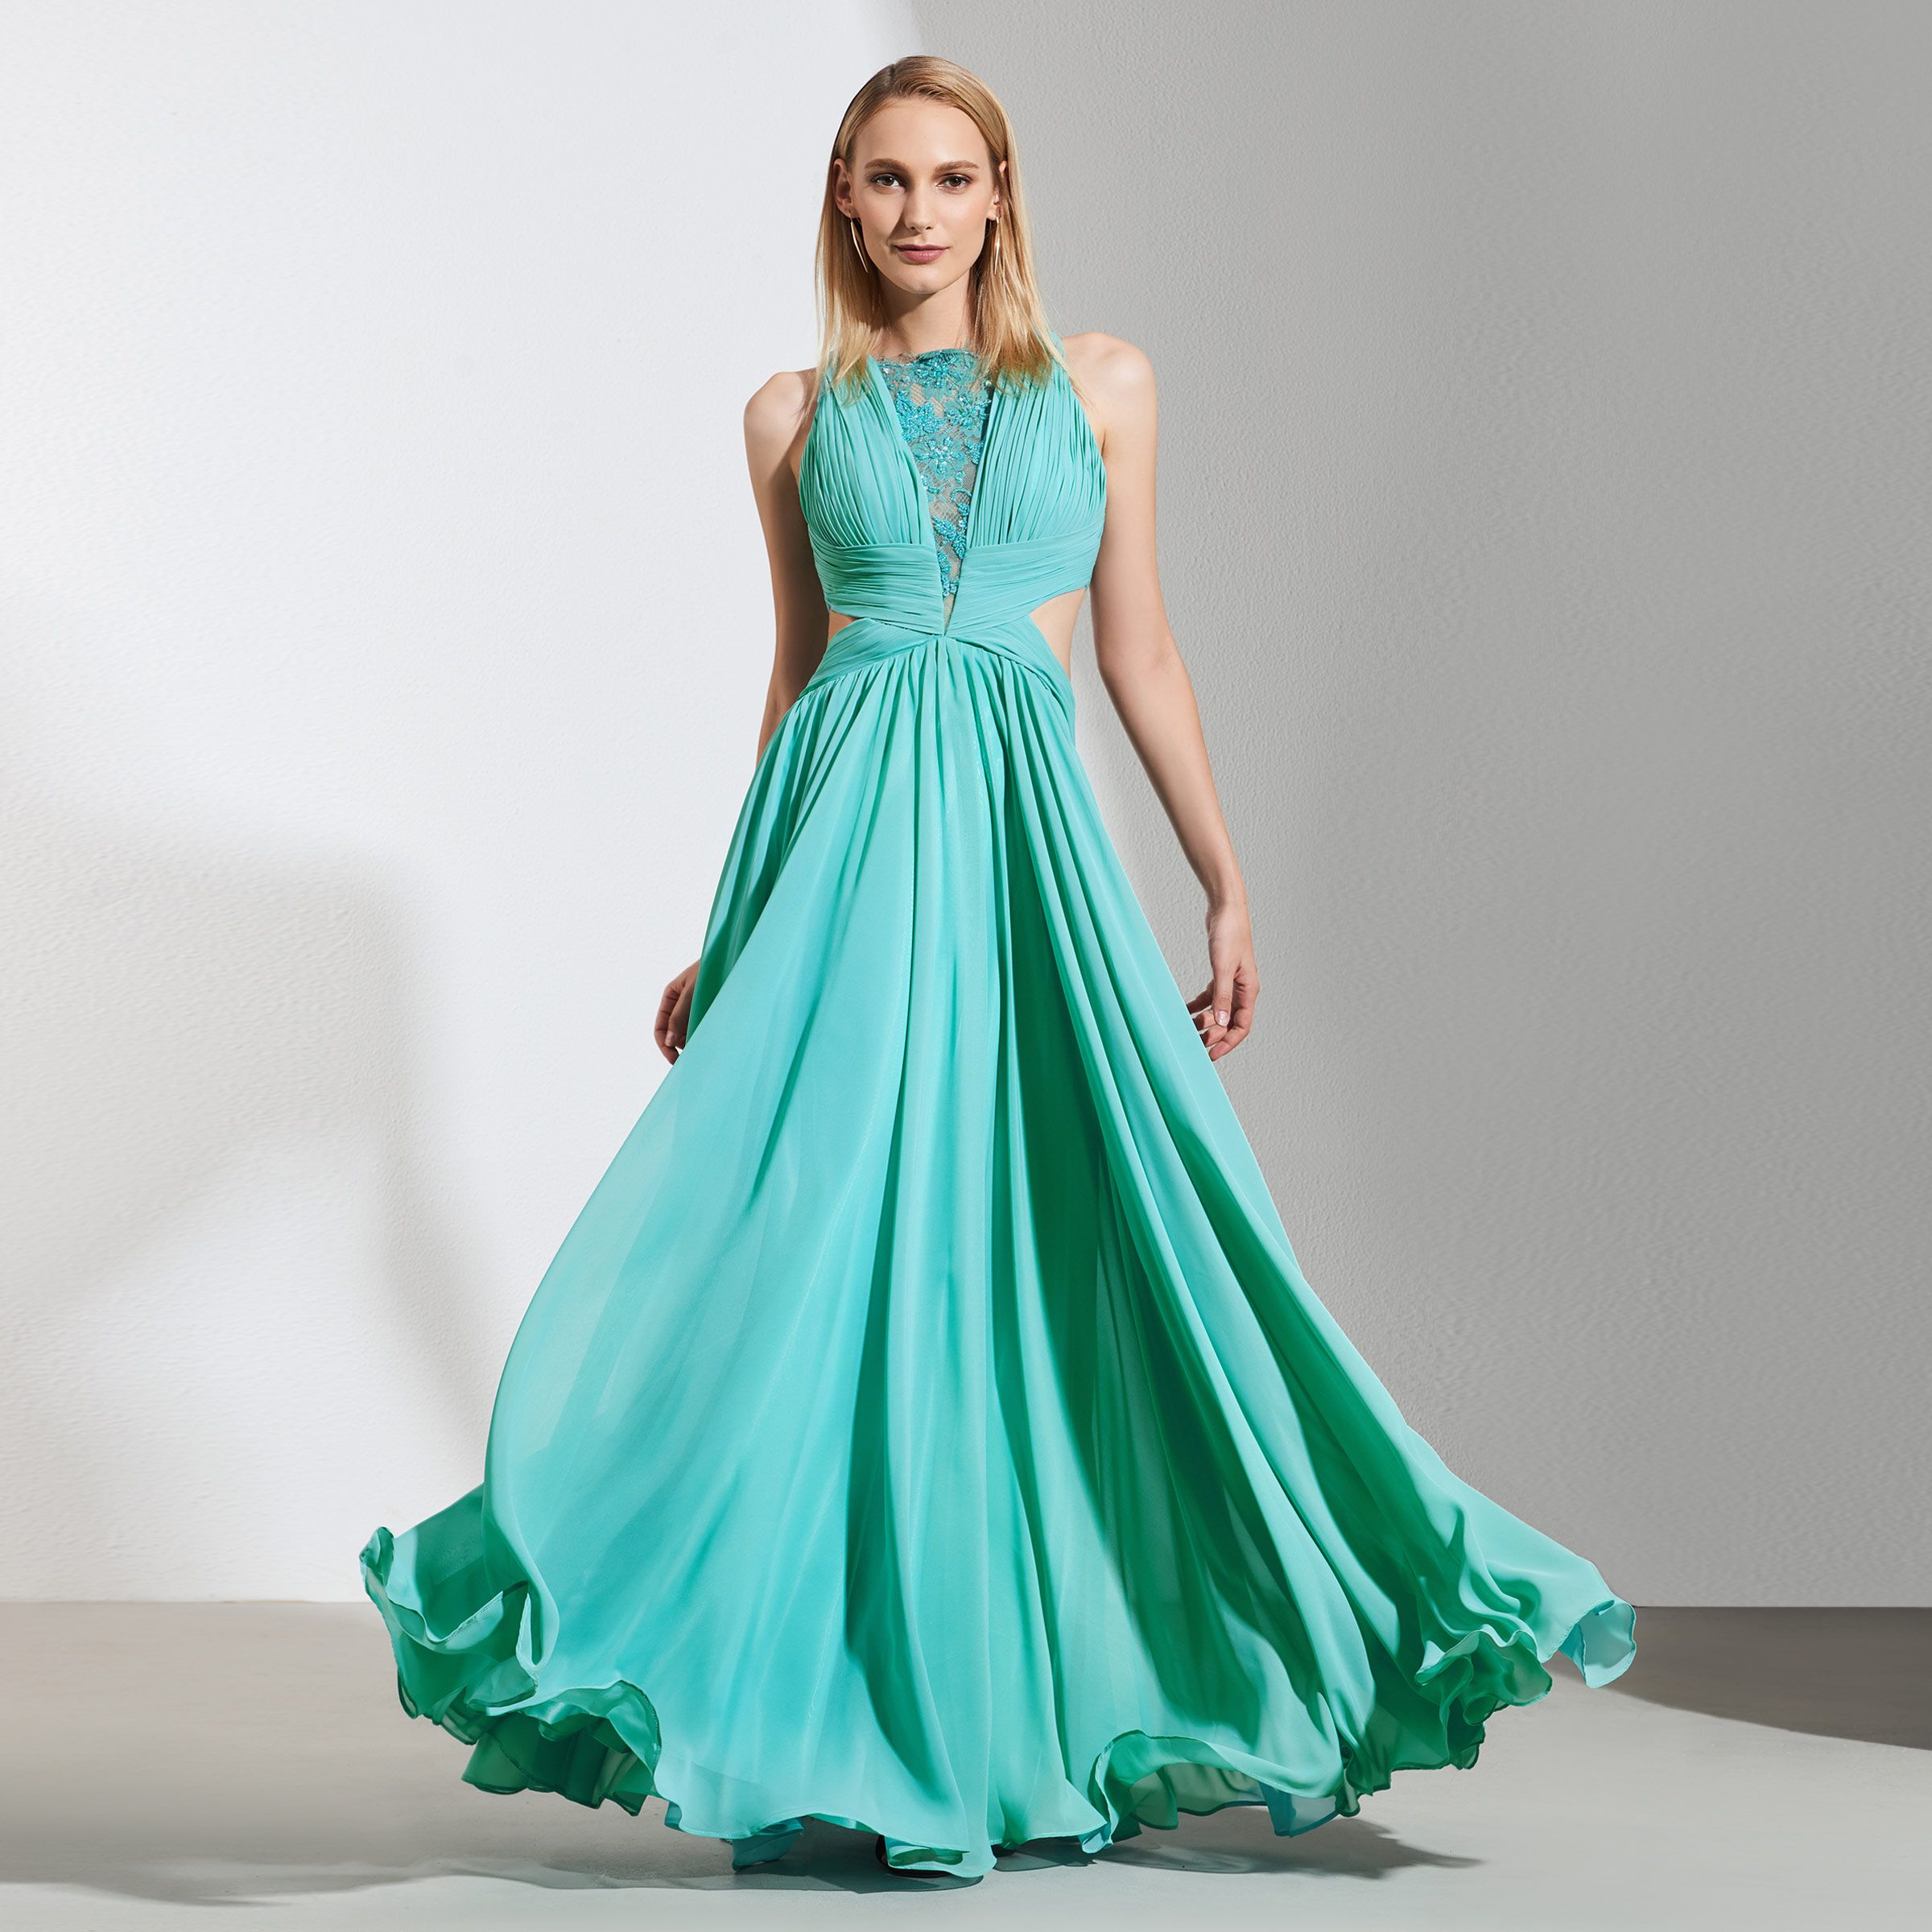 843d09239f8 Prom Dress New Arrival  Ericdress Reviews